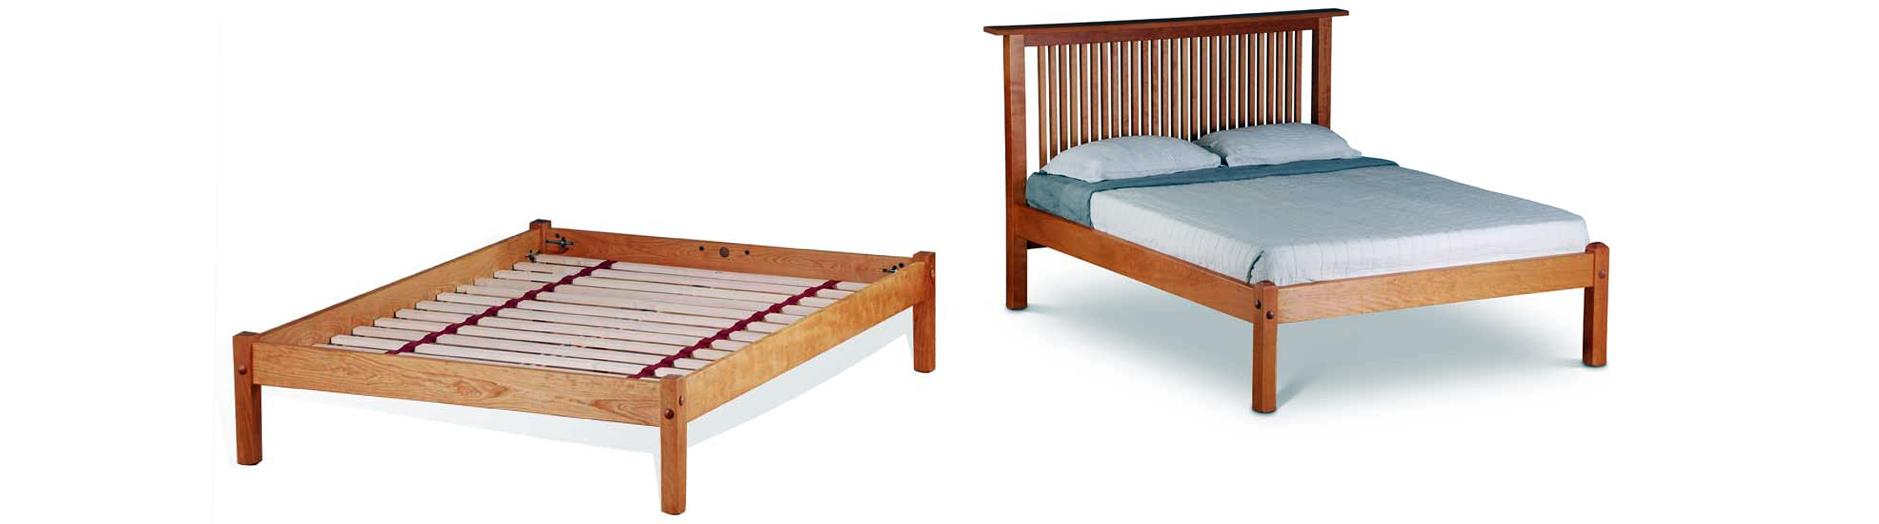 we-are-platform-beds